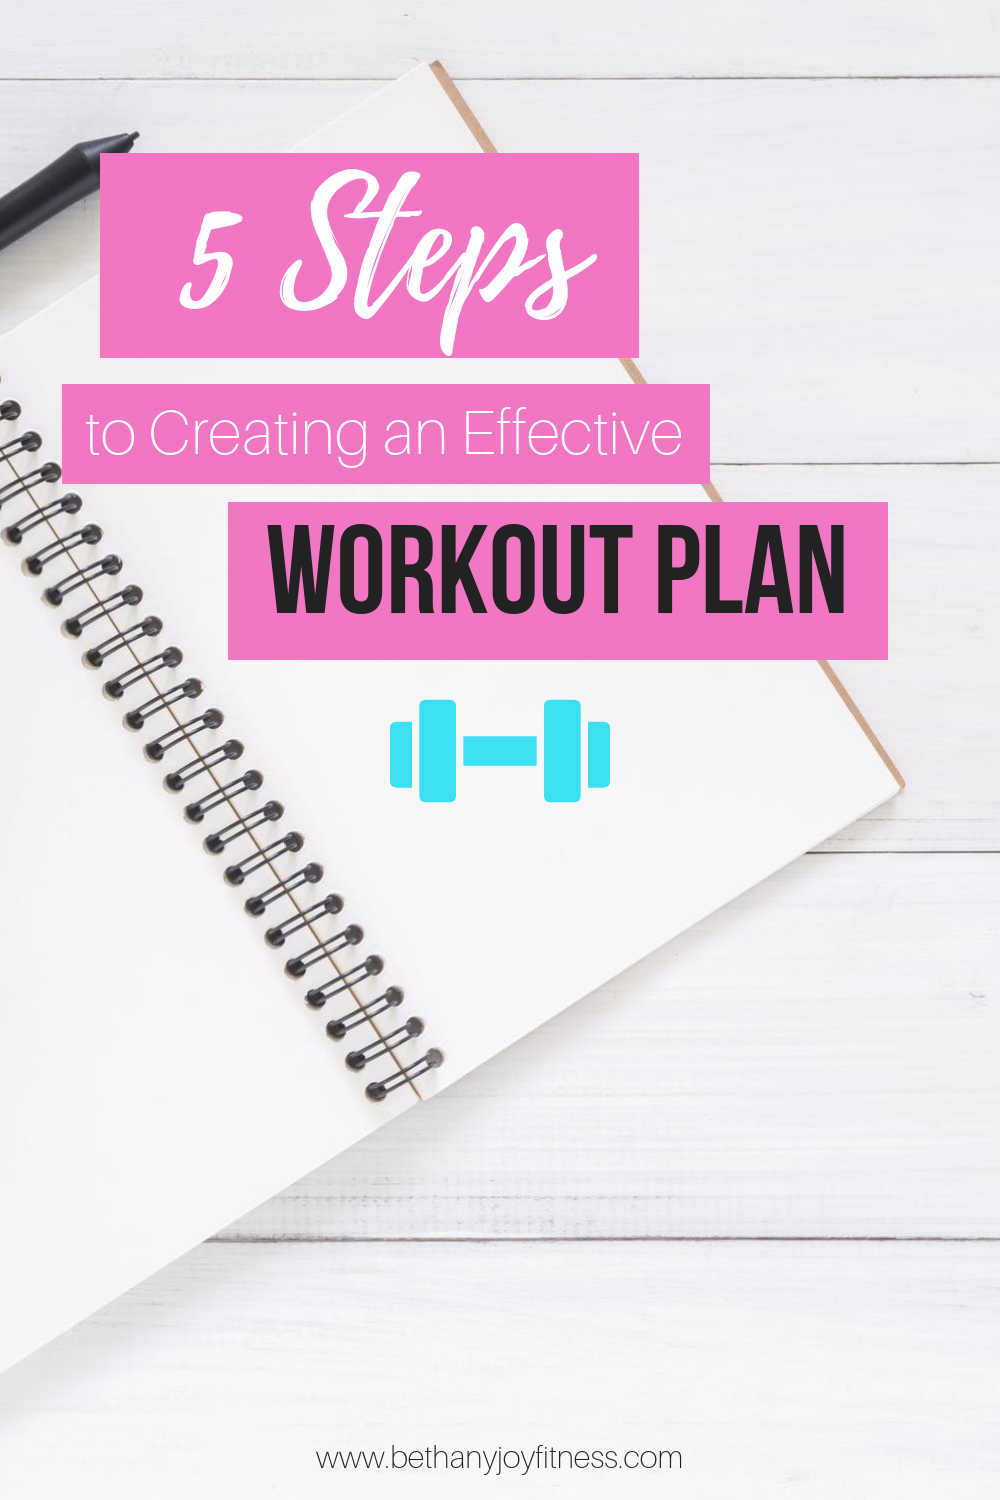 5 Steps to Creating an Effective Workout Plan #workoutplan